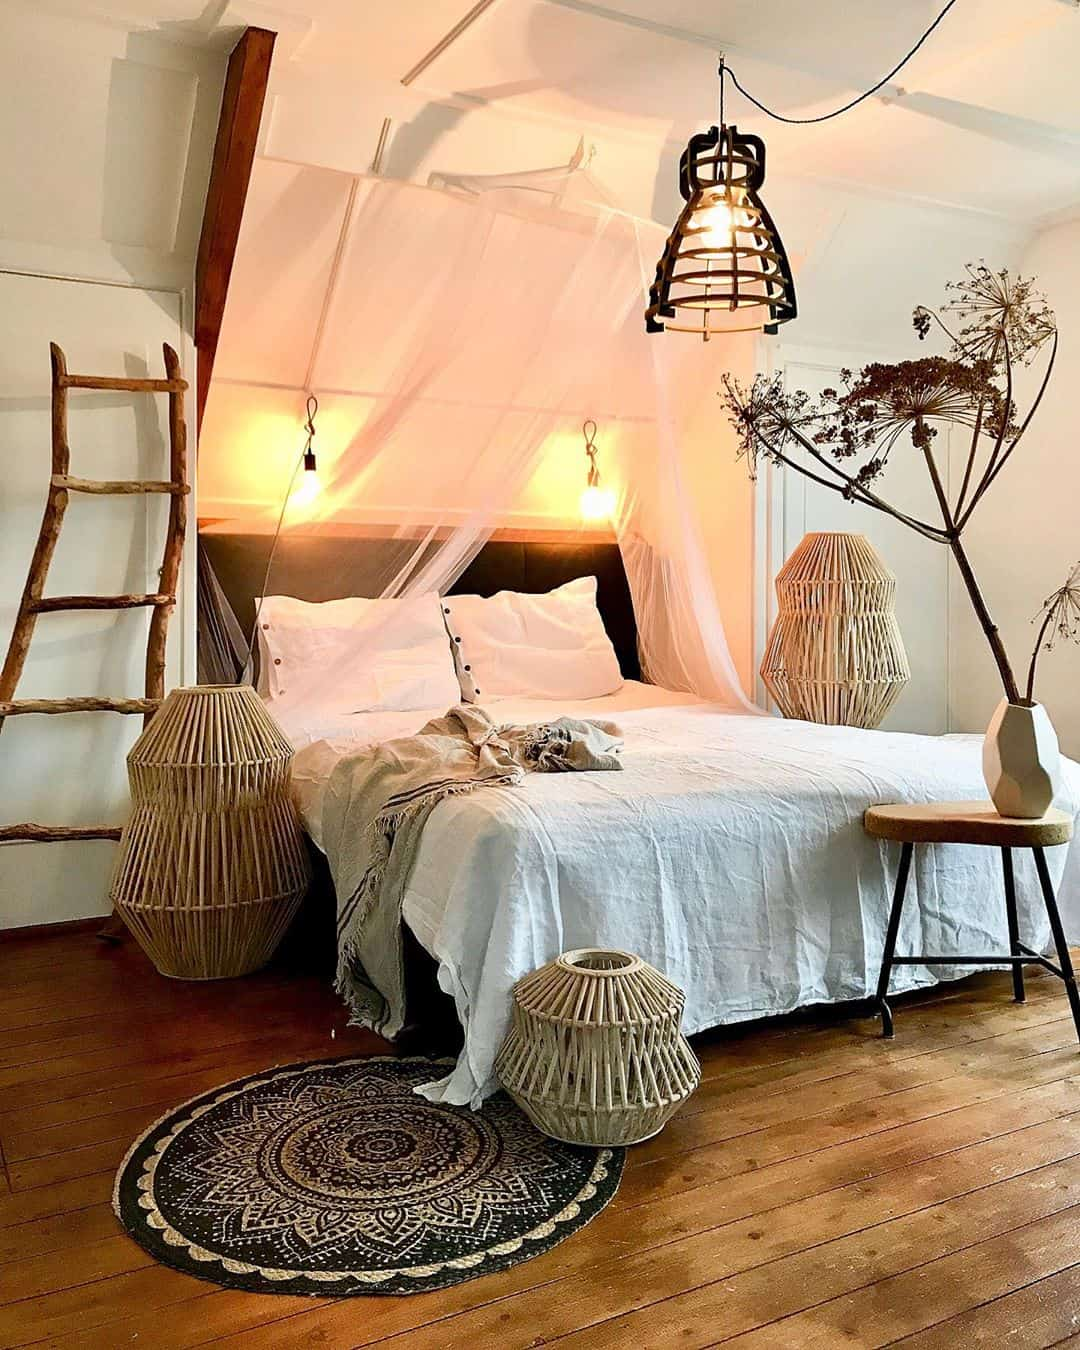 22 Dreamy Boho Bedroom Design Ideas